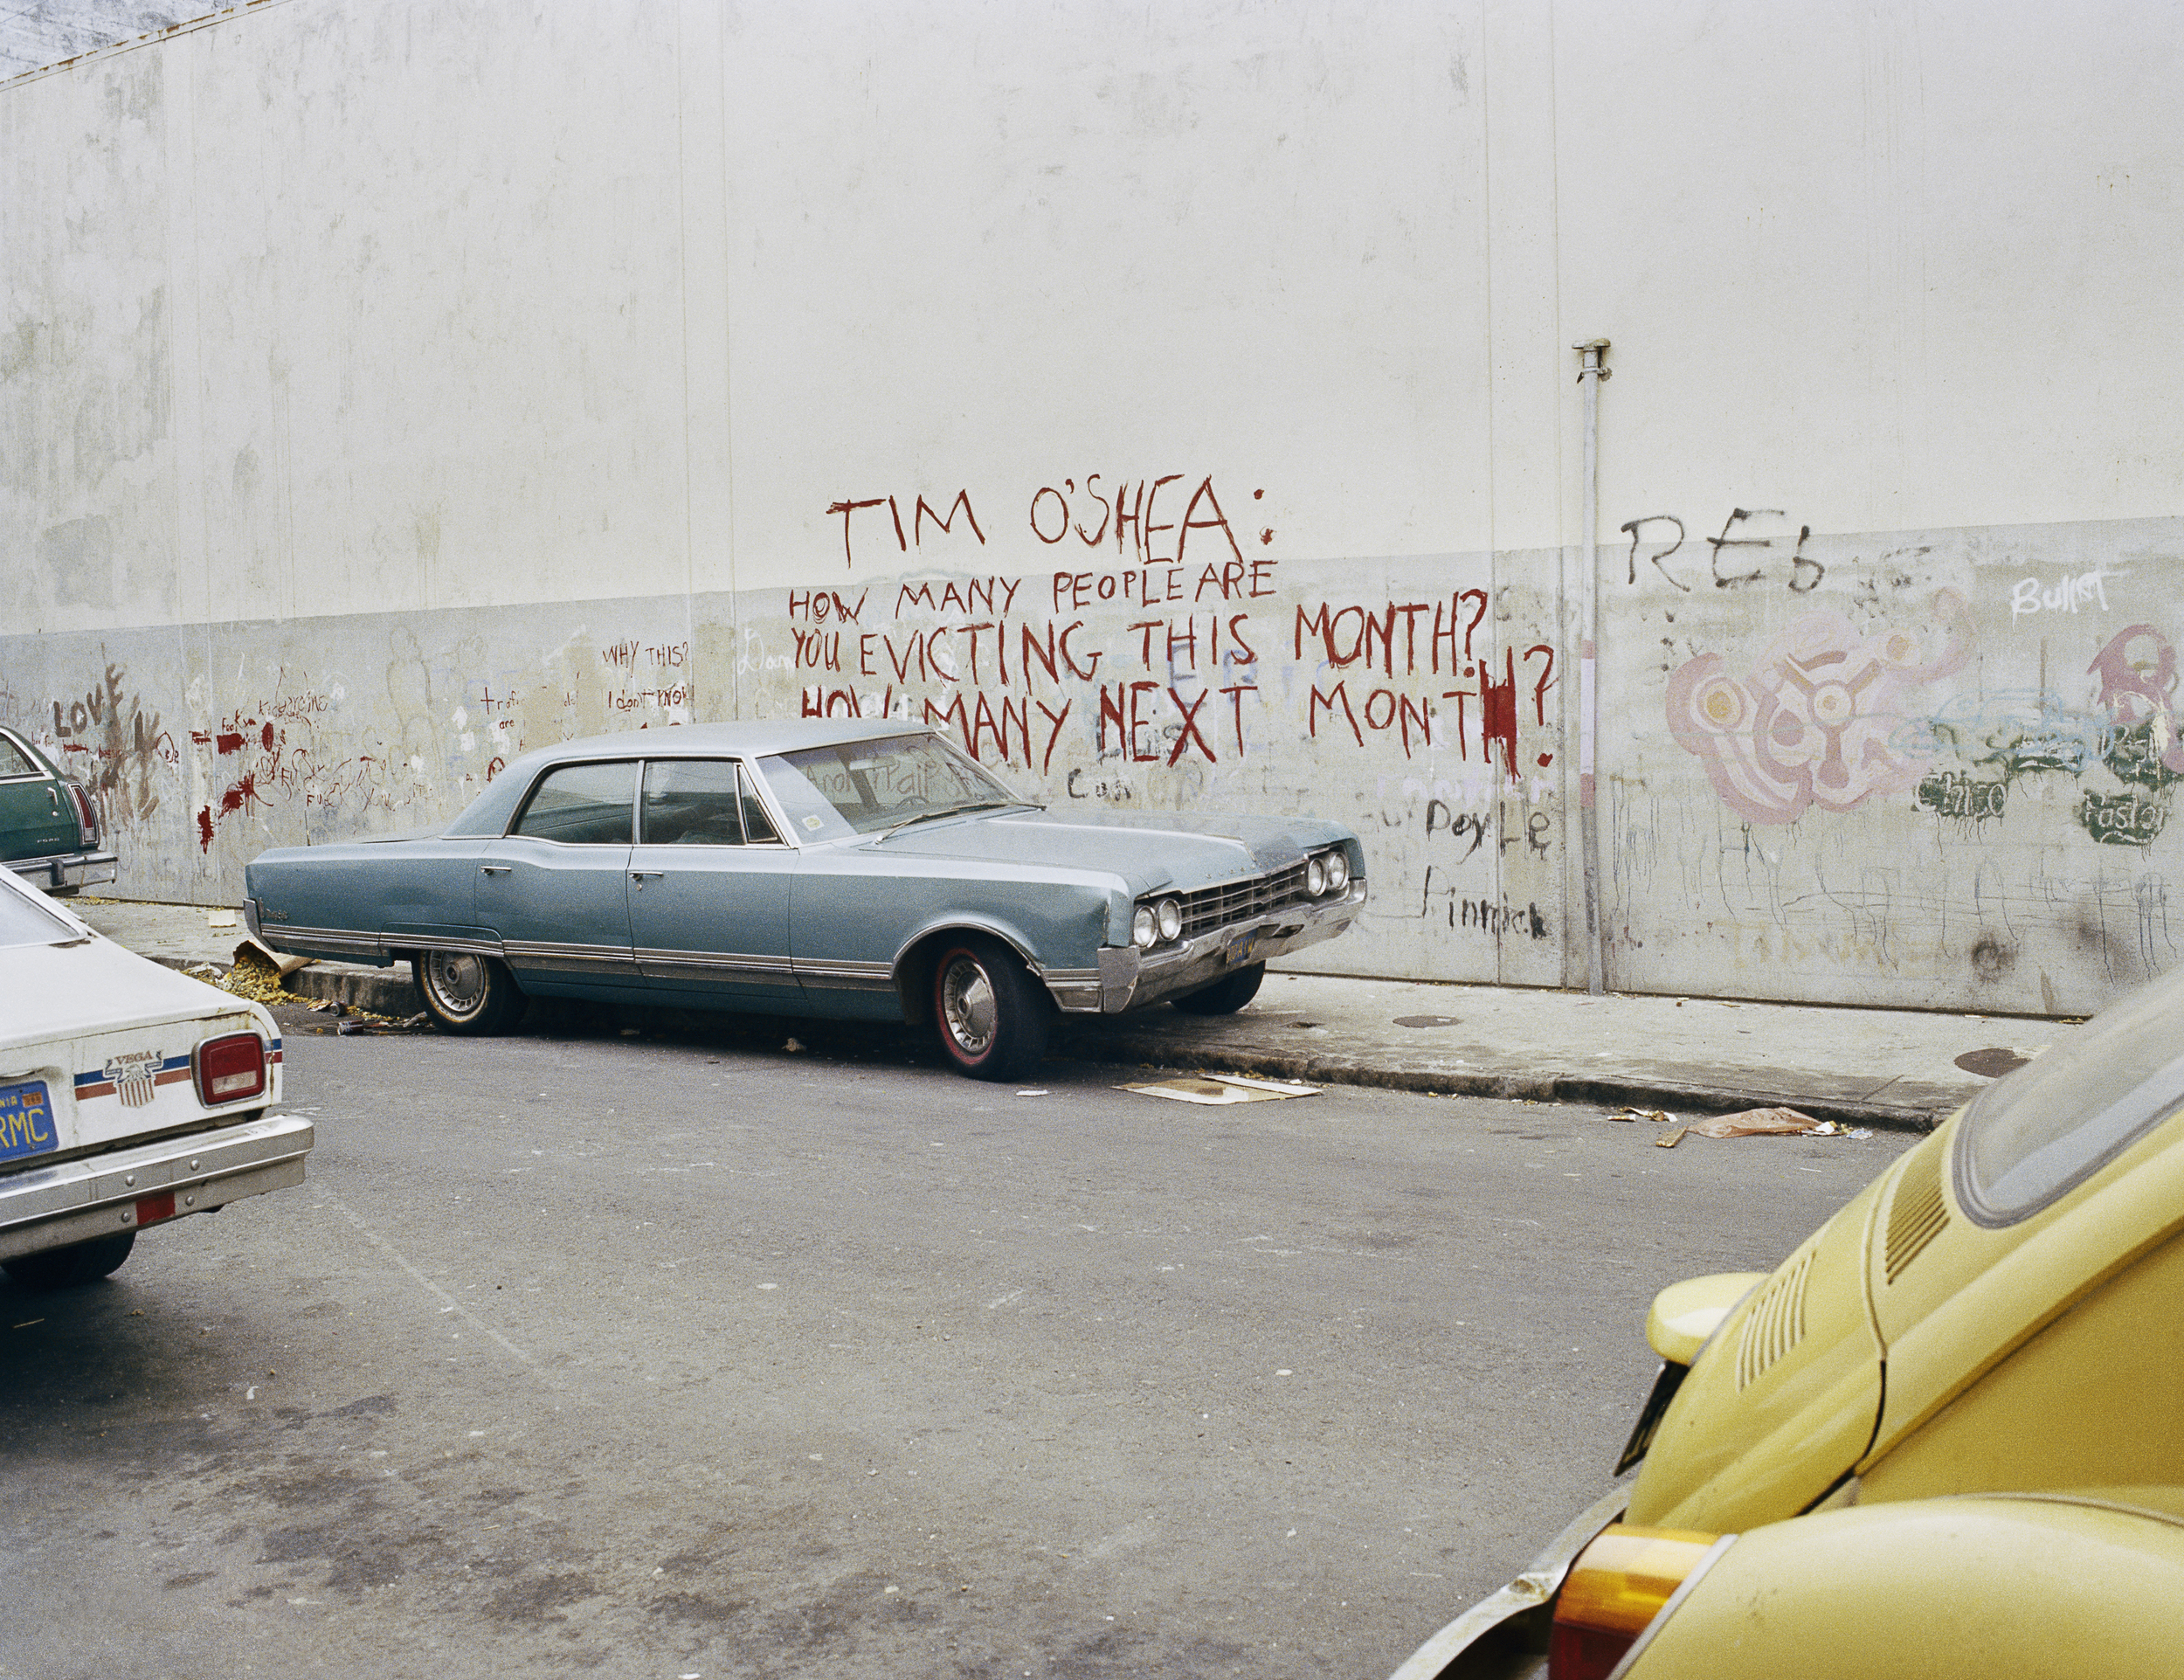 Langton between Folsom and Harrison Streets, 1979 Archival Pigment Print, 2016 16 x 20 inches, edition of 5 20 x 24 inches, edition of 2 30 x 40 inches, edition of 2